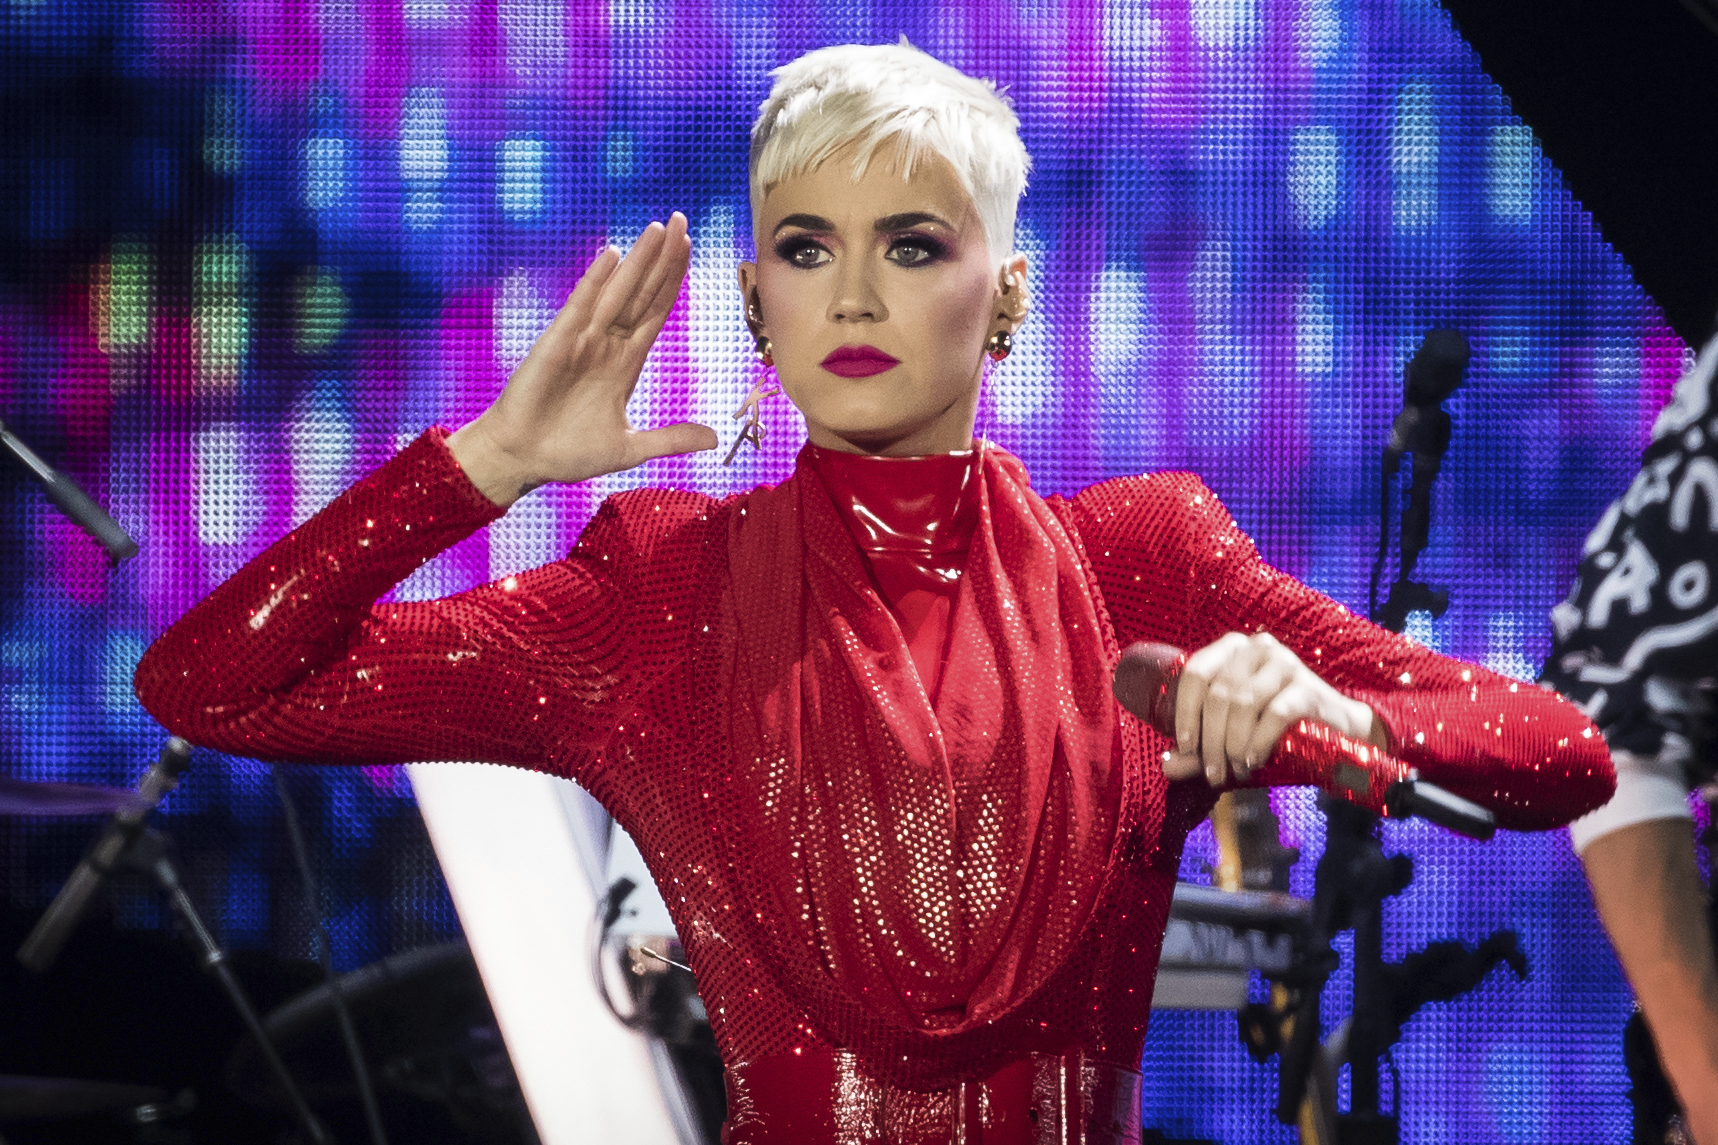 Katy Perry Helped A Fan Propose in the Middle of Her Concert | More ...